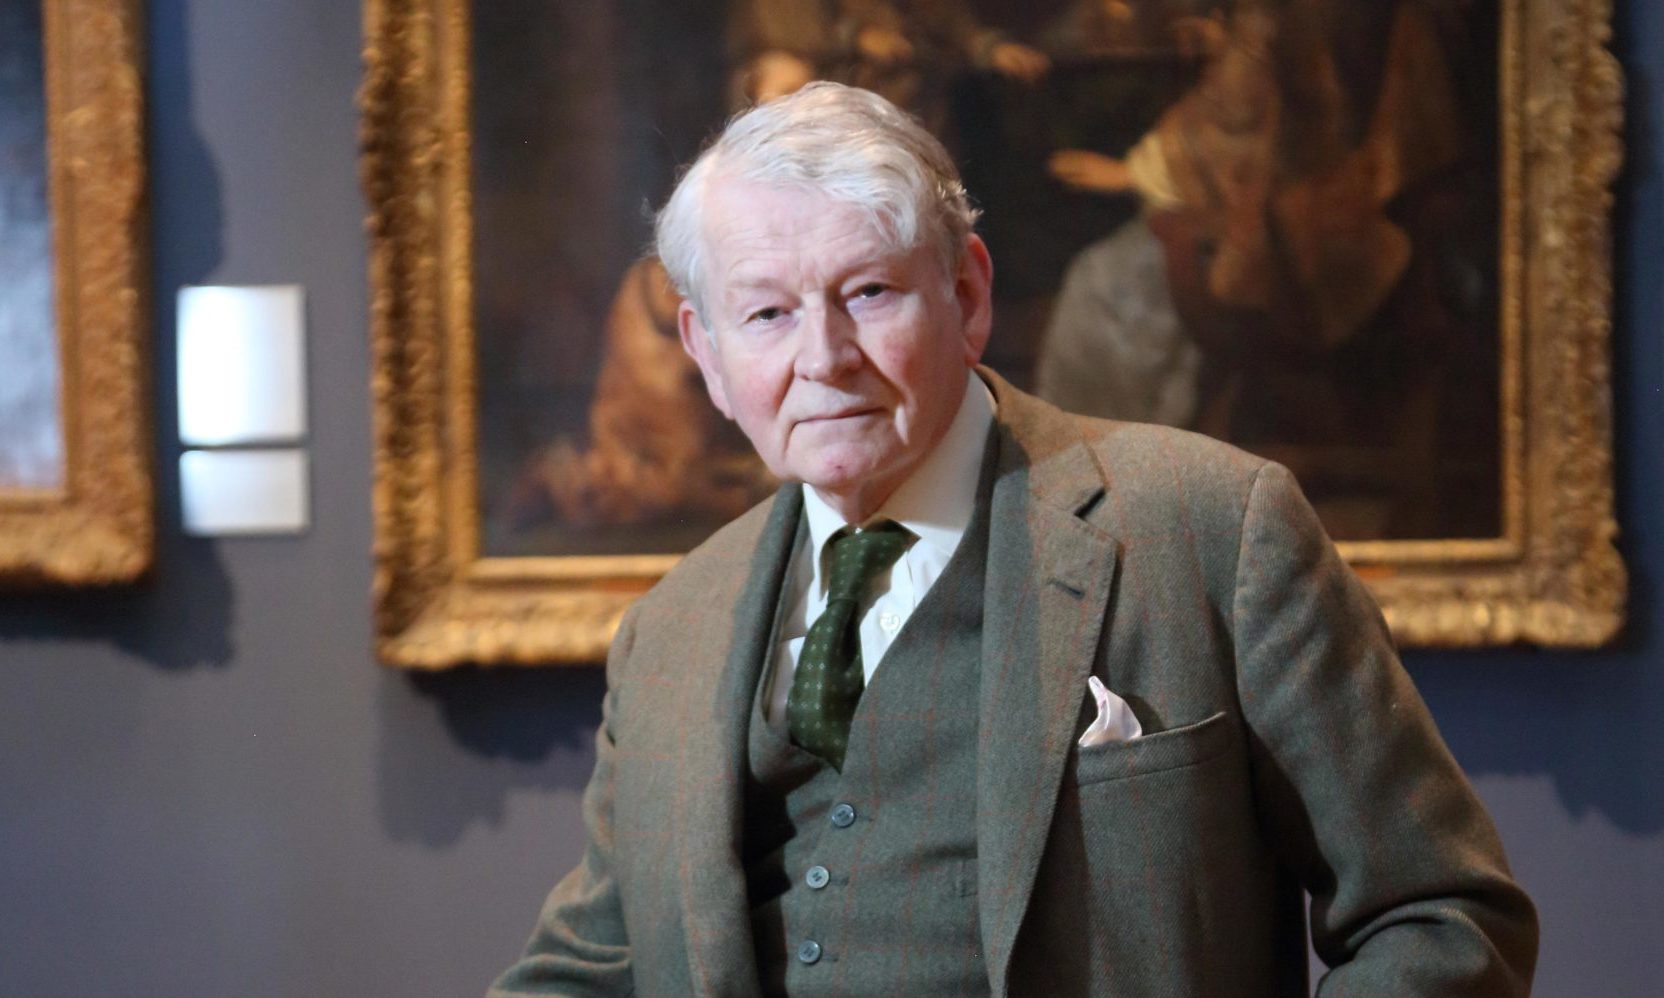 Former child actor Jon Whiteley photographed at the Ashmolean museum in Oxford.